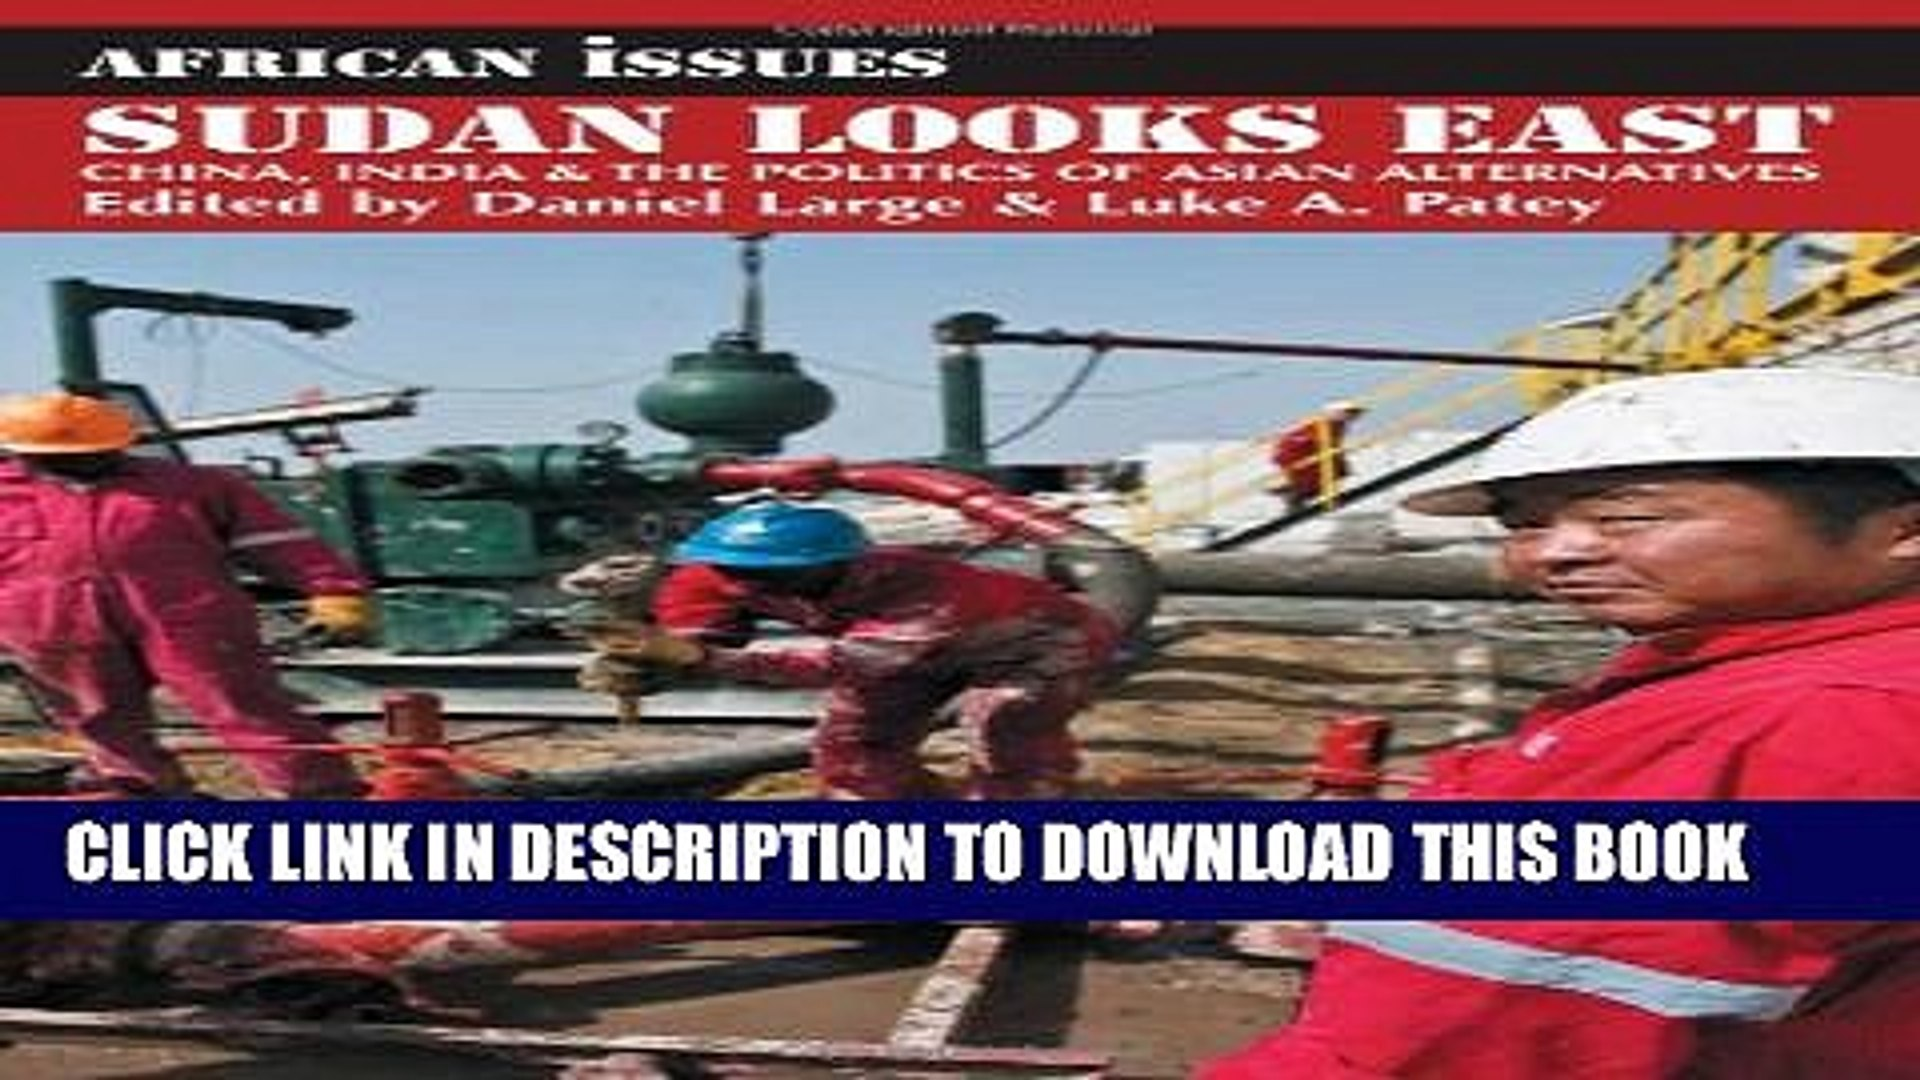 [Read PDF] Sudan Looks East: China, India and the Politics of Asian Alternatives (African Issues)